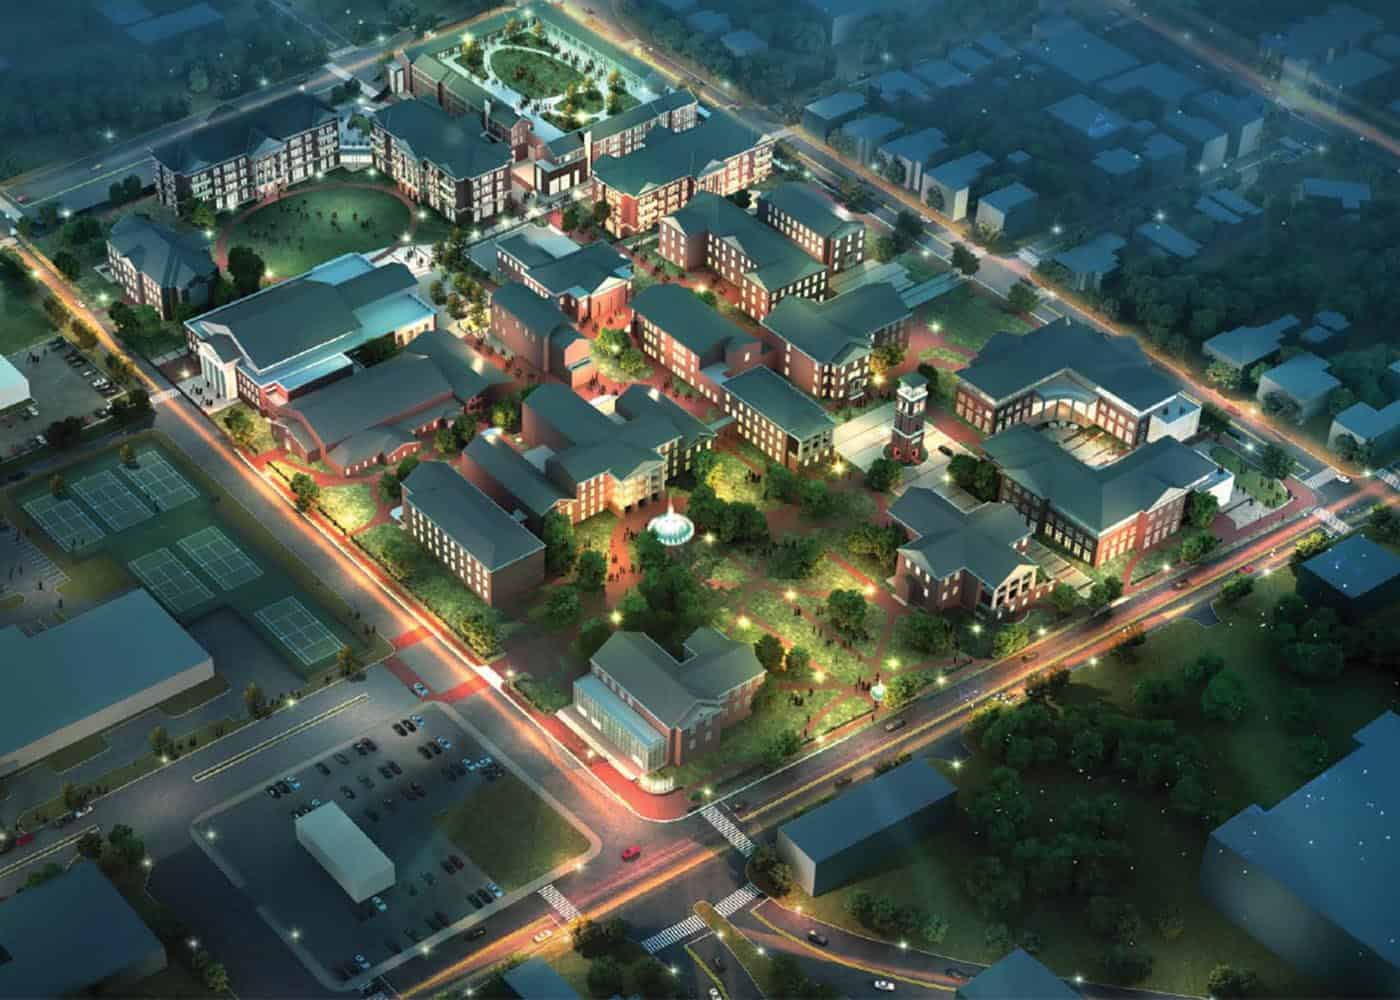 The William Peace University Campus Master plan was developed in partnership with ODELL and Stewart and is a bold vision for the future of the University campus at 15 E. Peace Street.